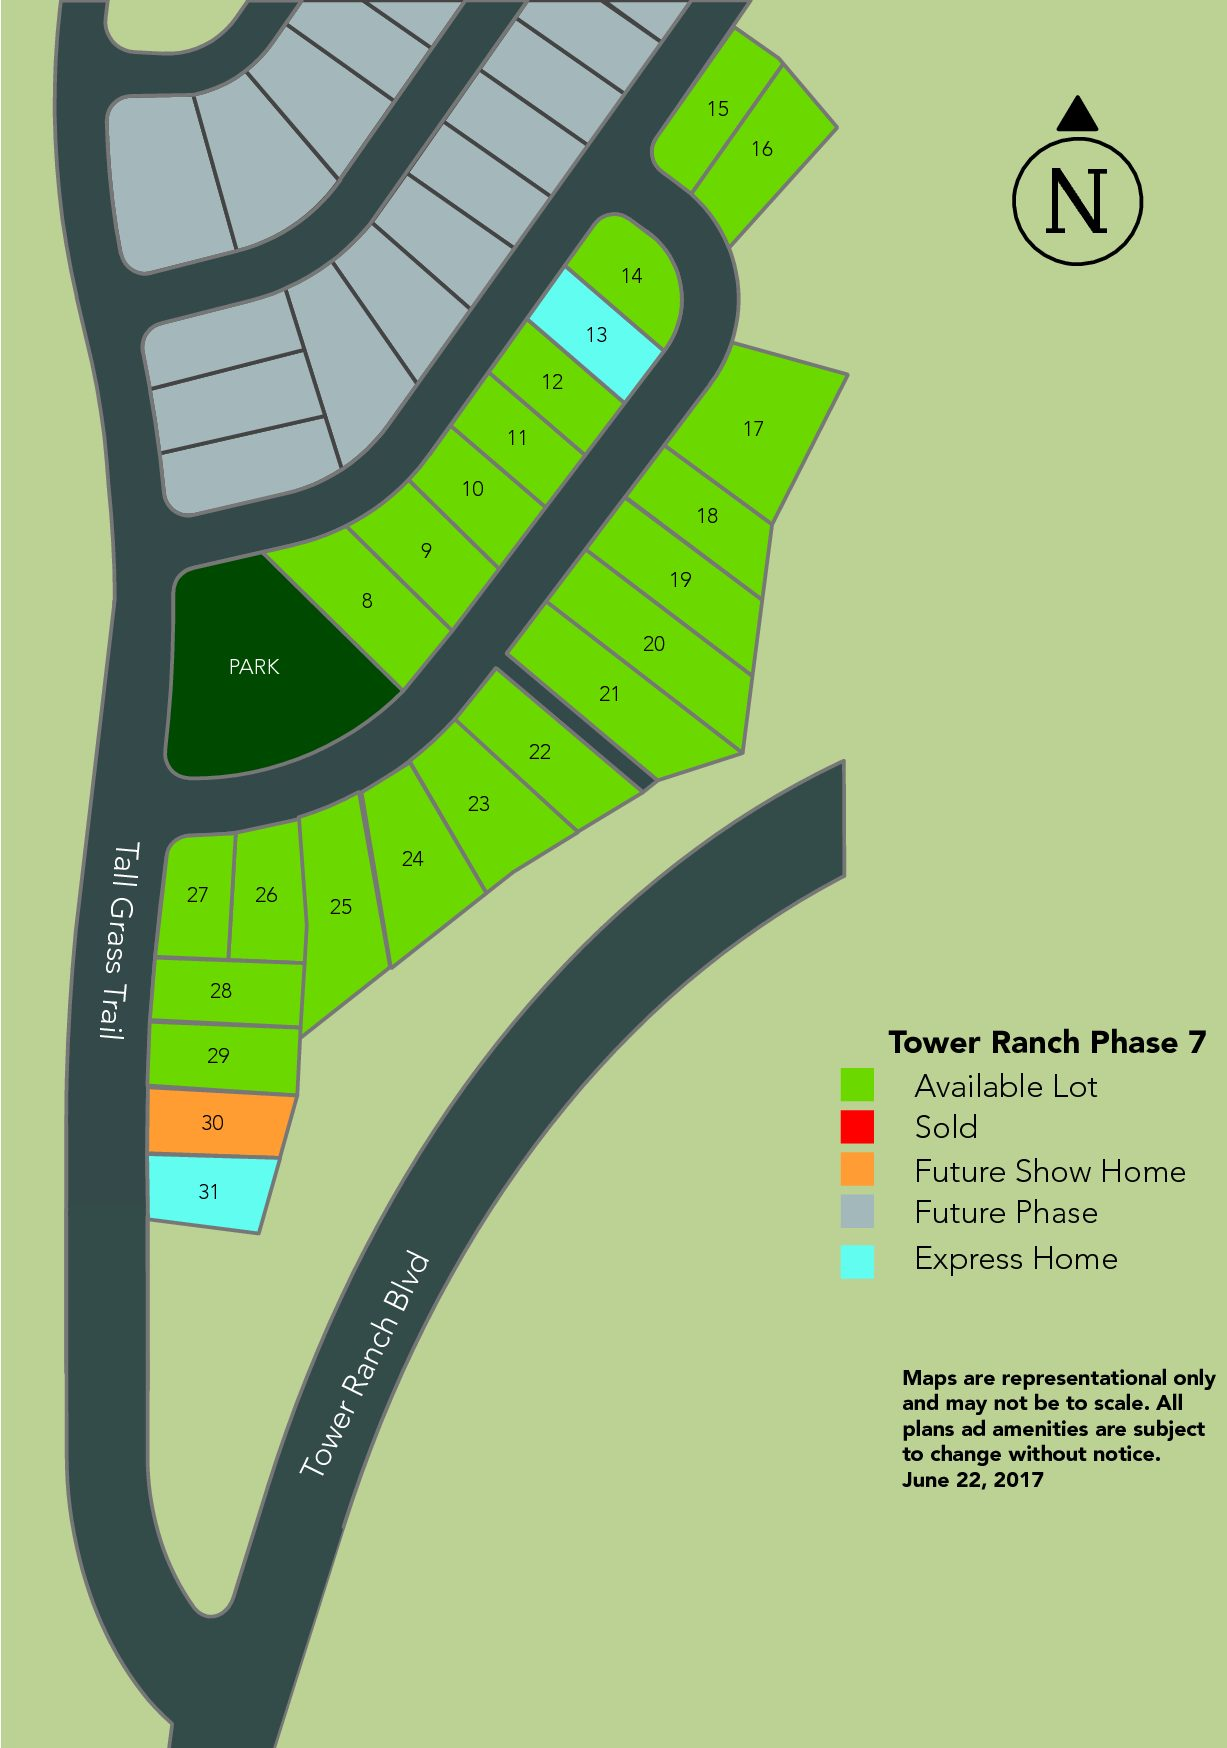 Tower Ranch Phase 7 Marketing Map Layout